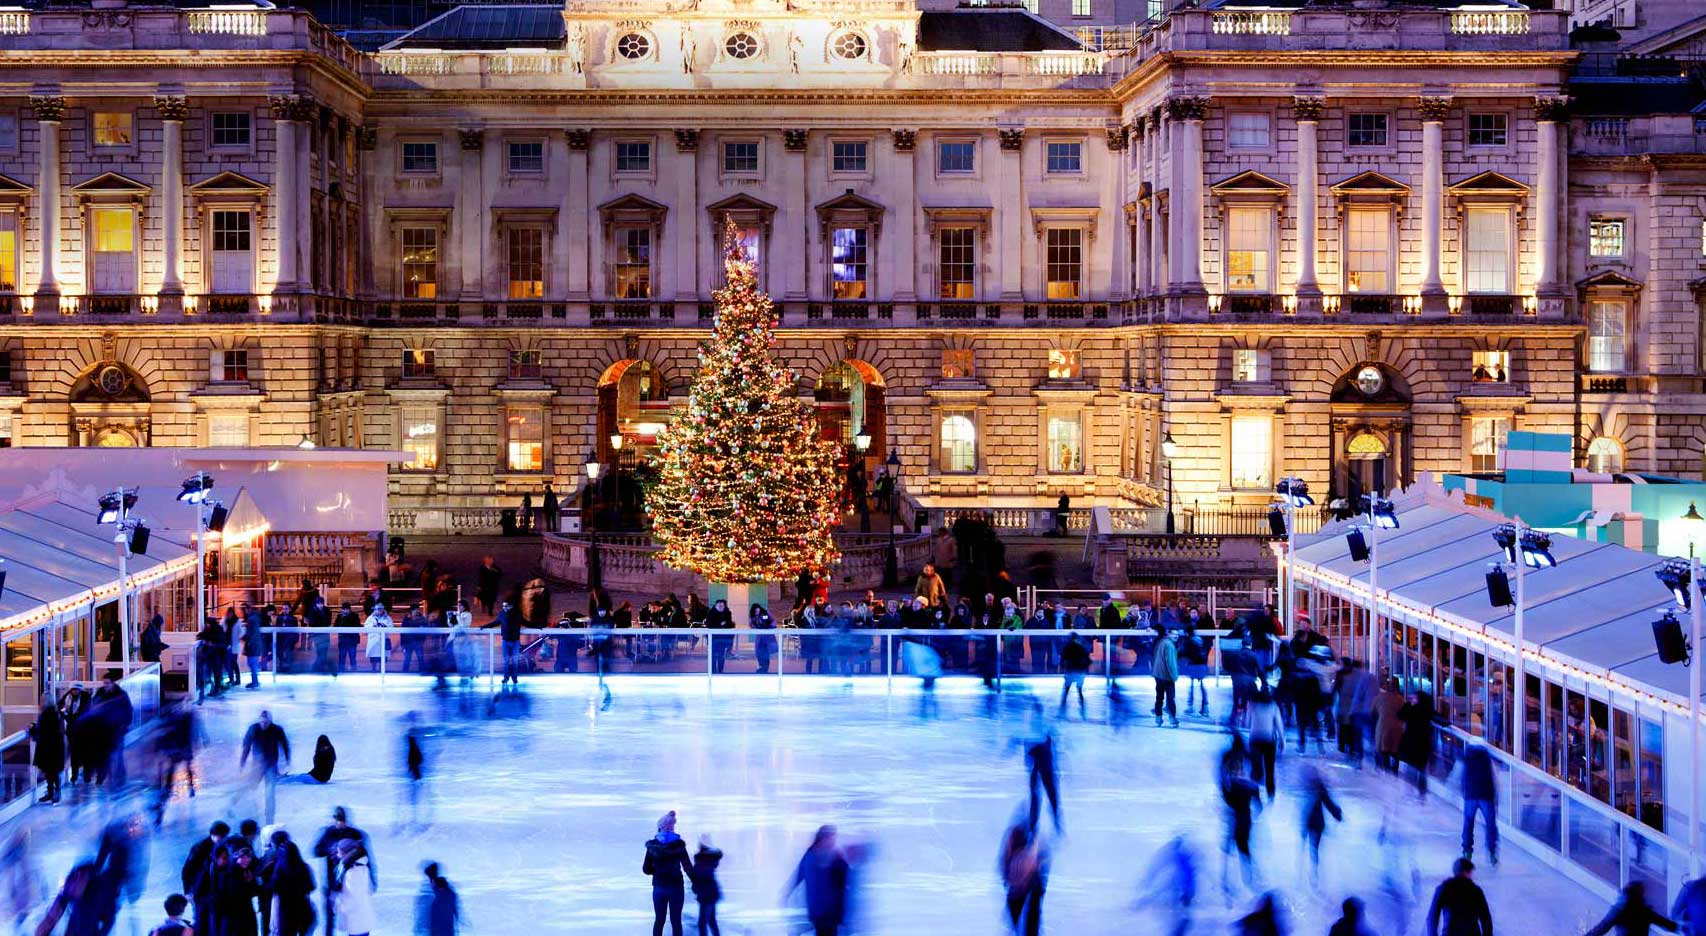 The most famous ice rink in London, the Somerset House Rink